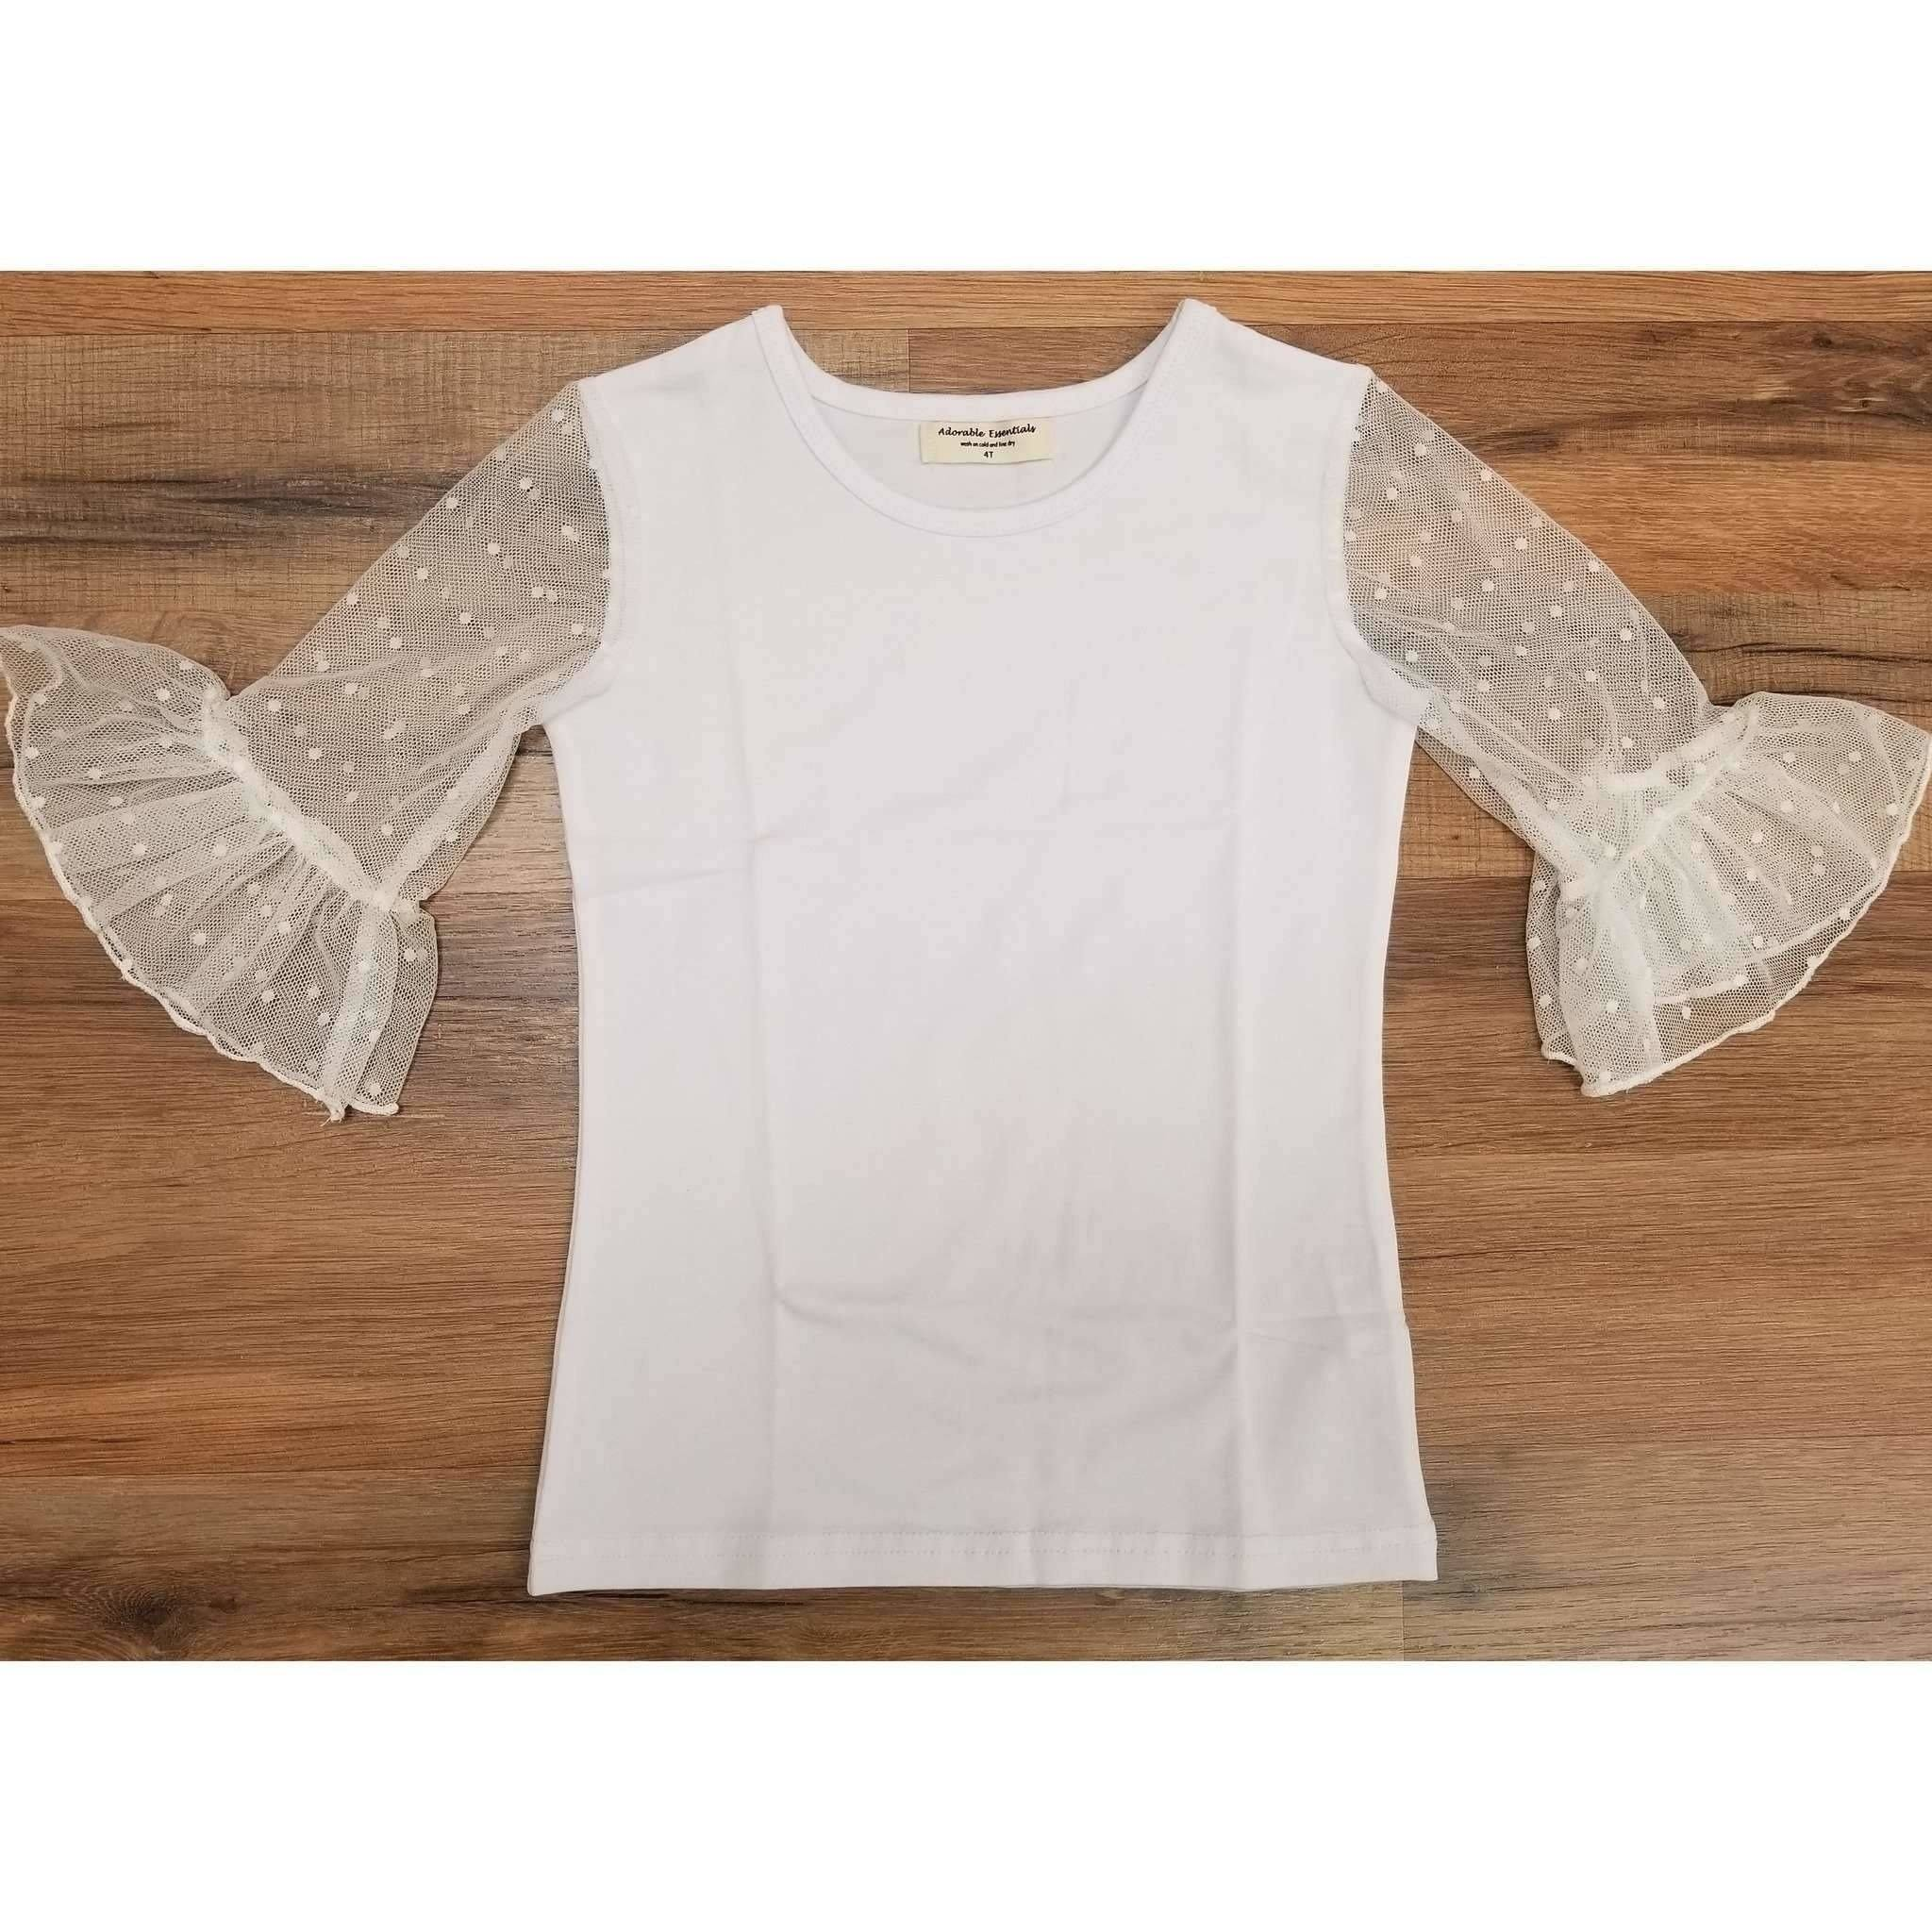 Adorable Essentials, Dainty Lace Mid Sleeve Single Ruffle Shirt,Tops,Adorable Essentials, LLC